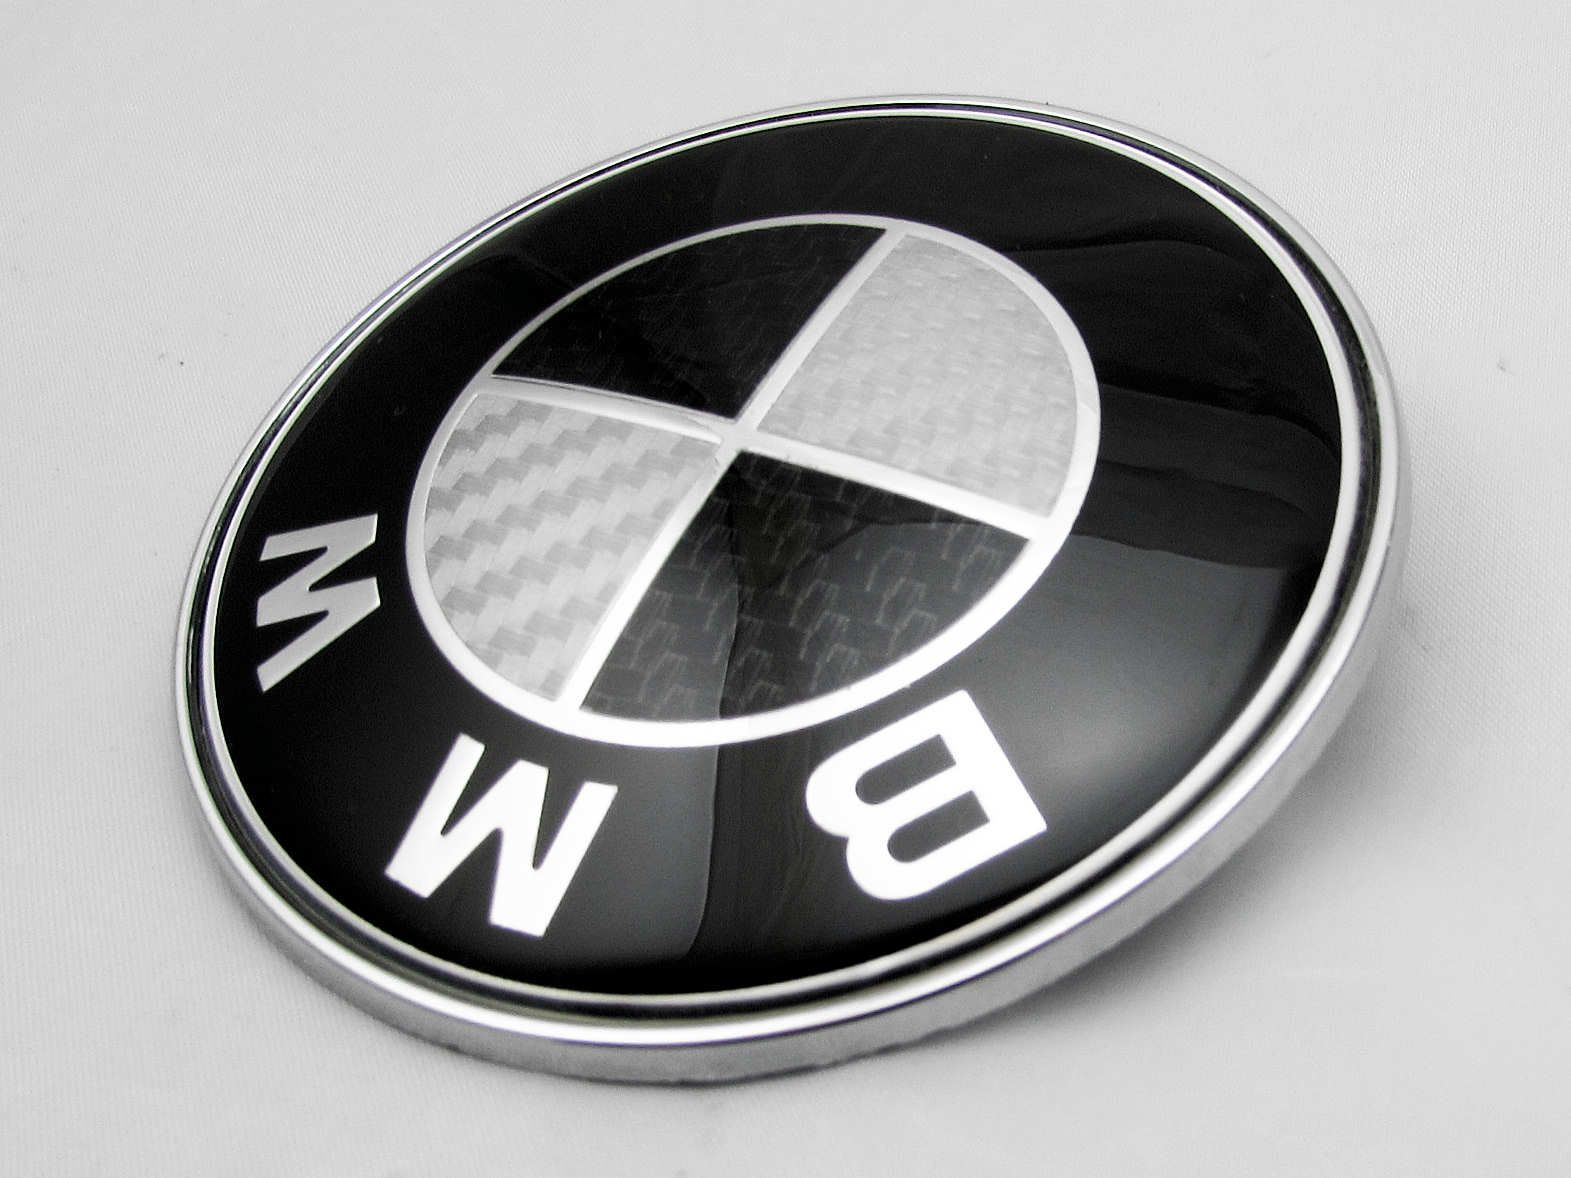 1 Pcs M Performance Car Vehicles Interior Black Emblems Sticker Badge Decal